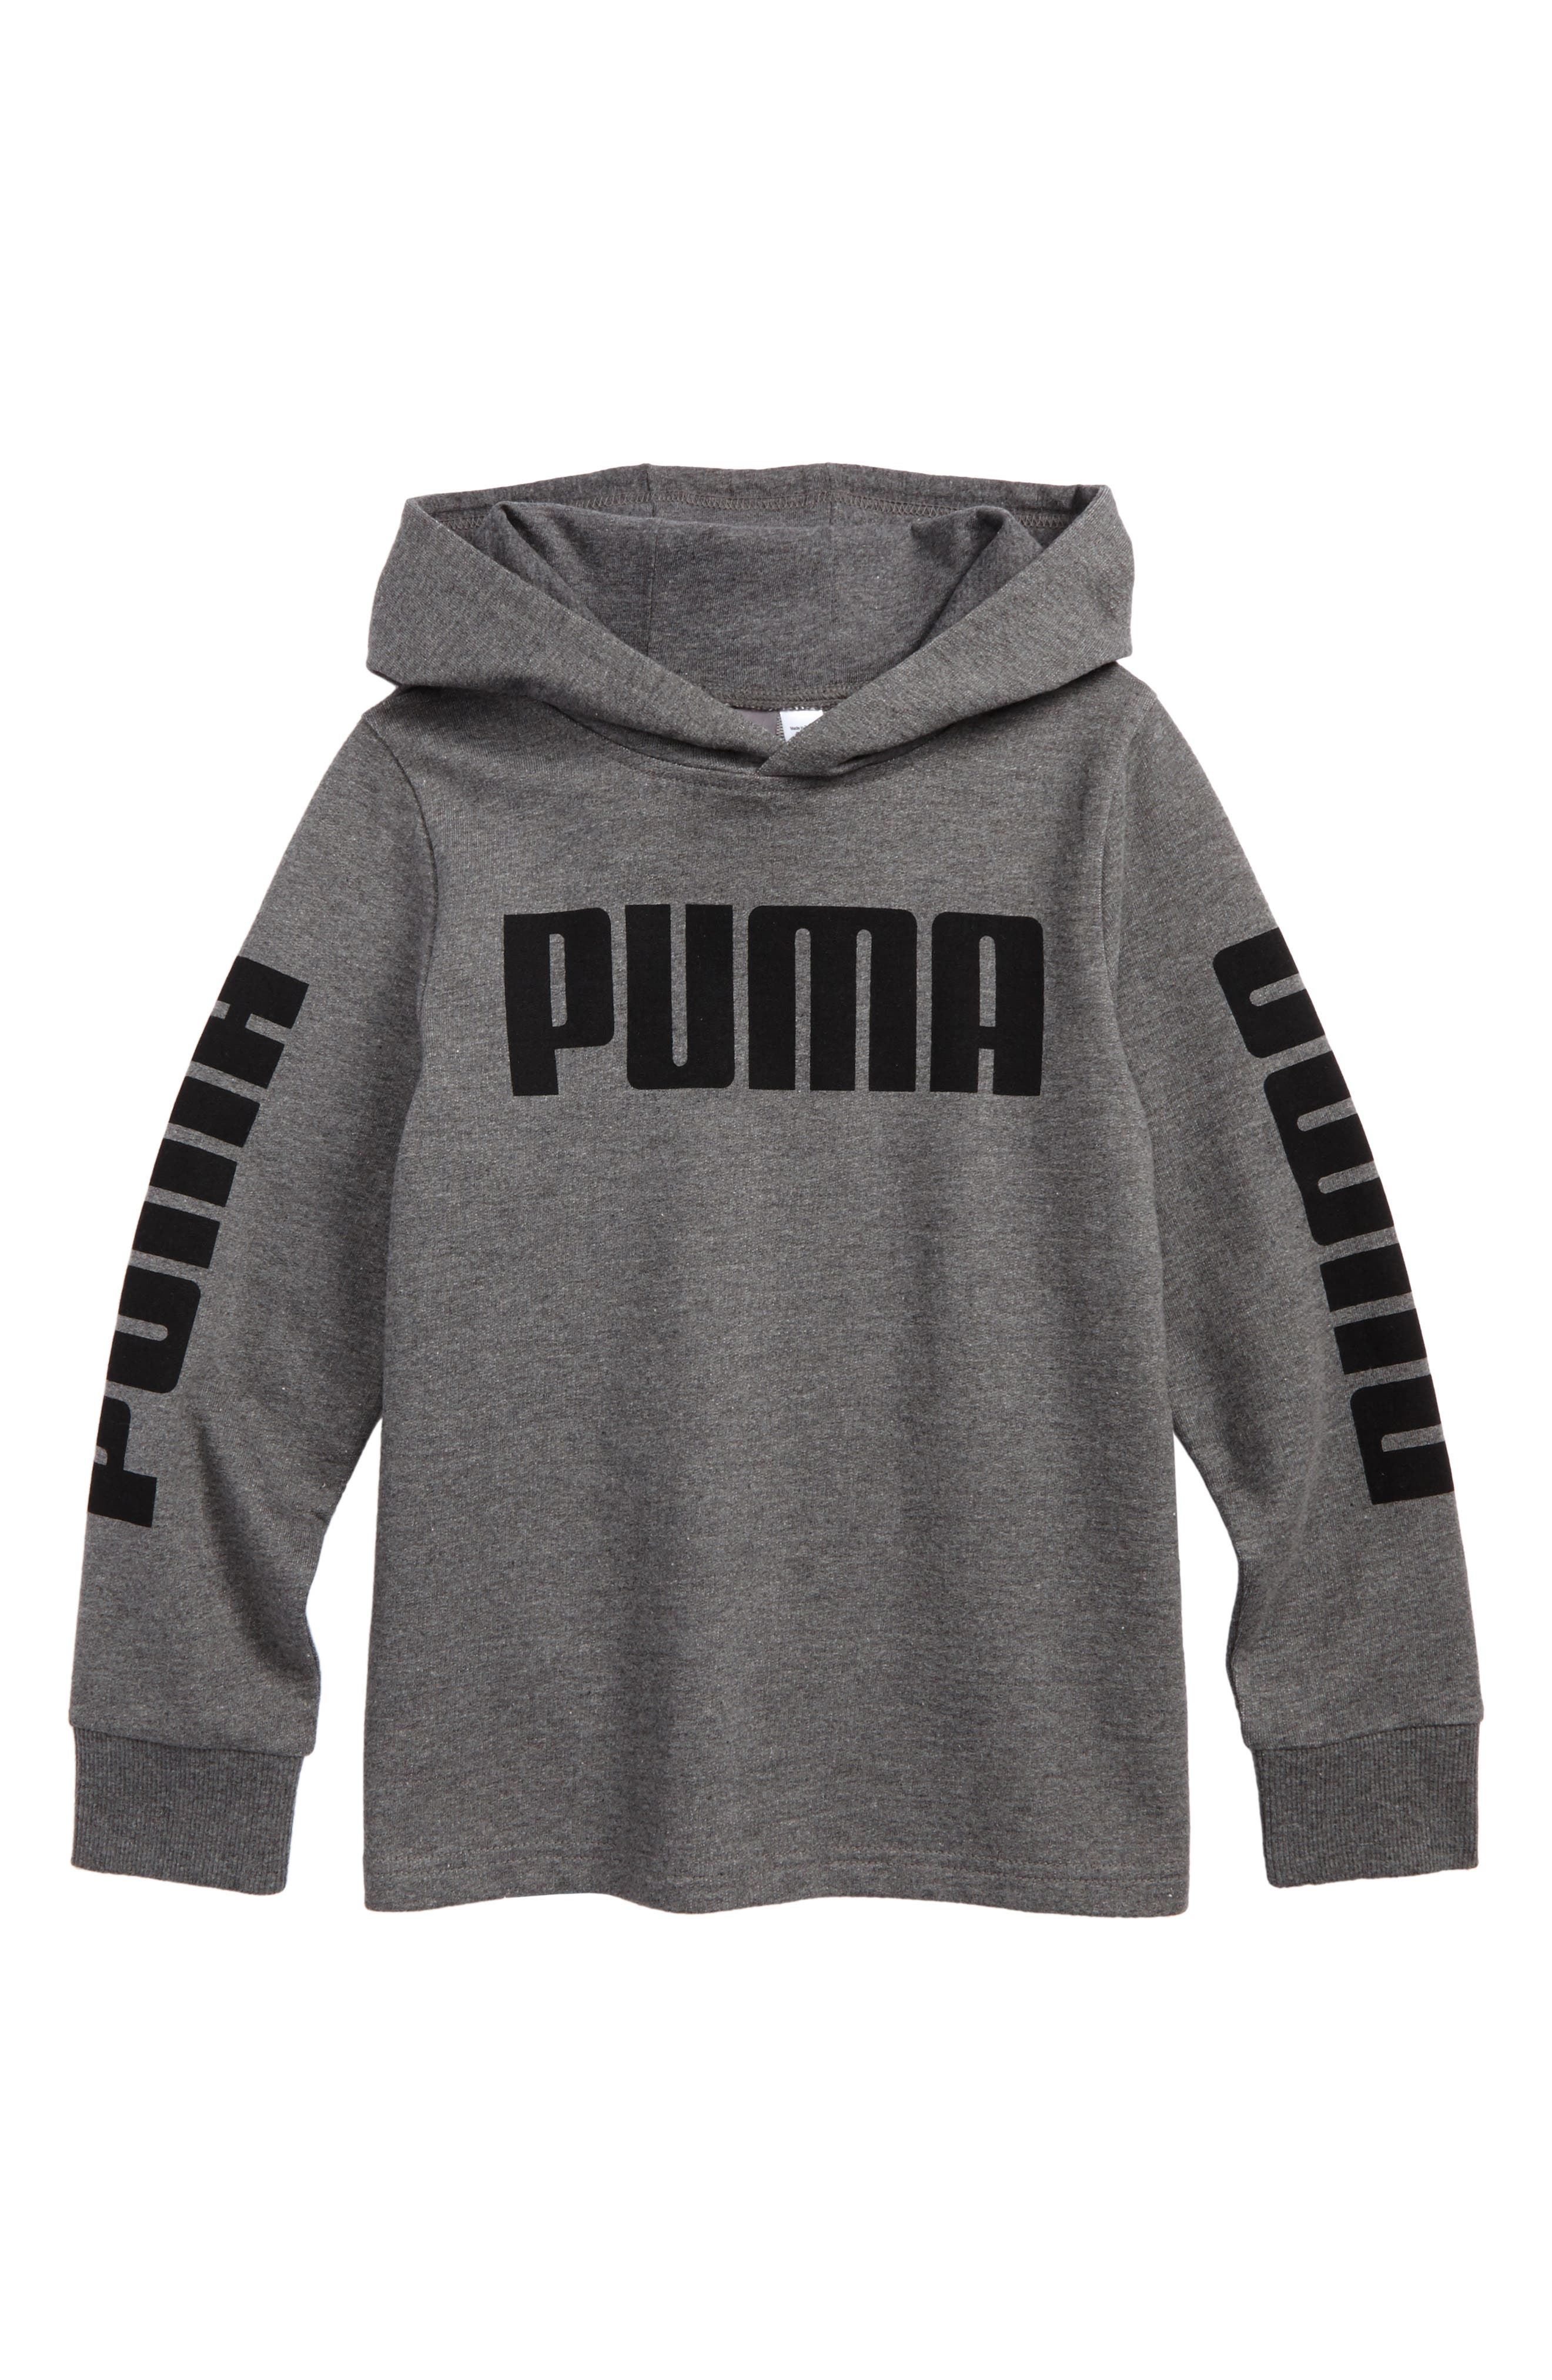 Rebel Logo Graphic Hoodie,                             Main thumbnail 1, color,                             Charcoal Heather